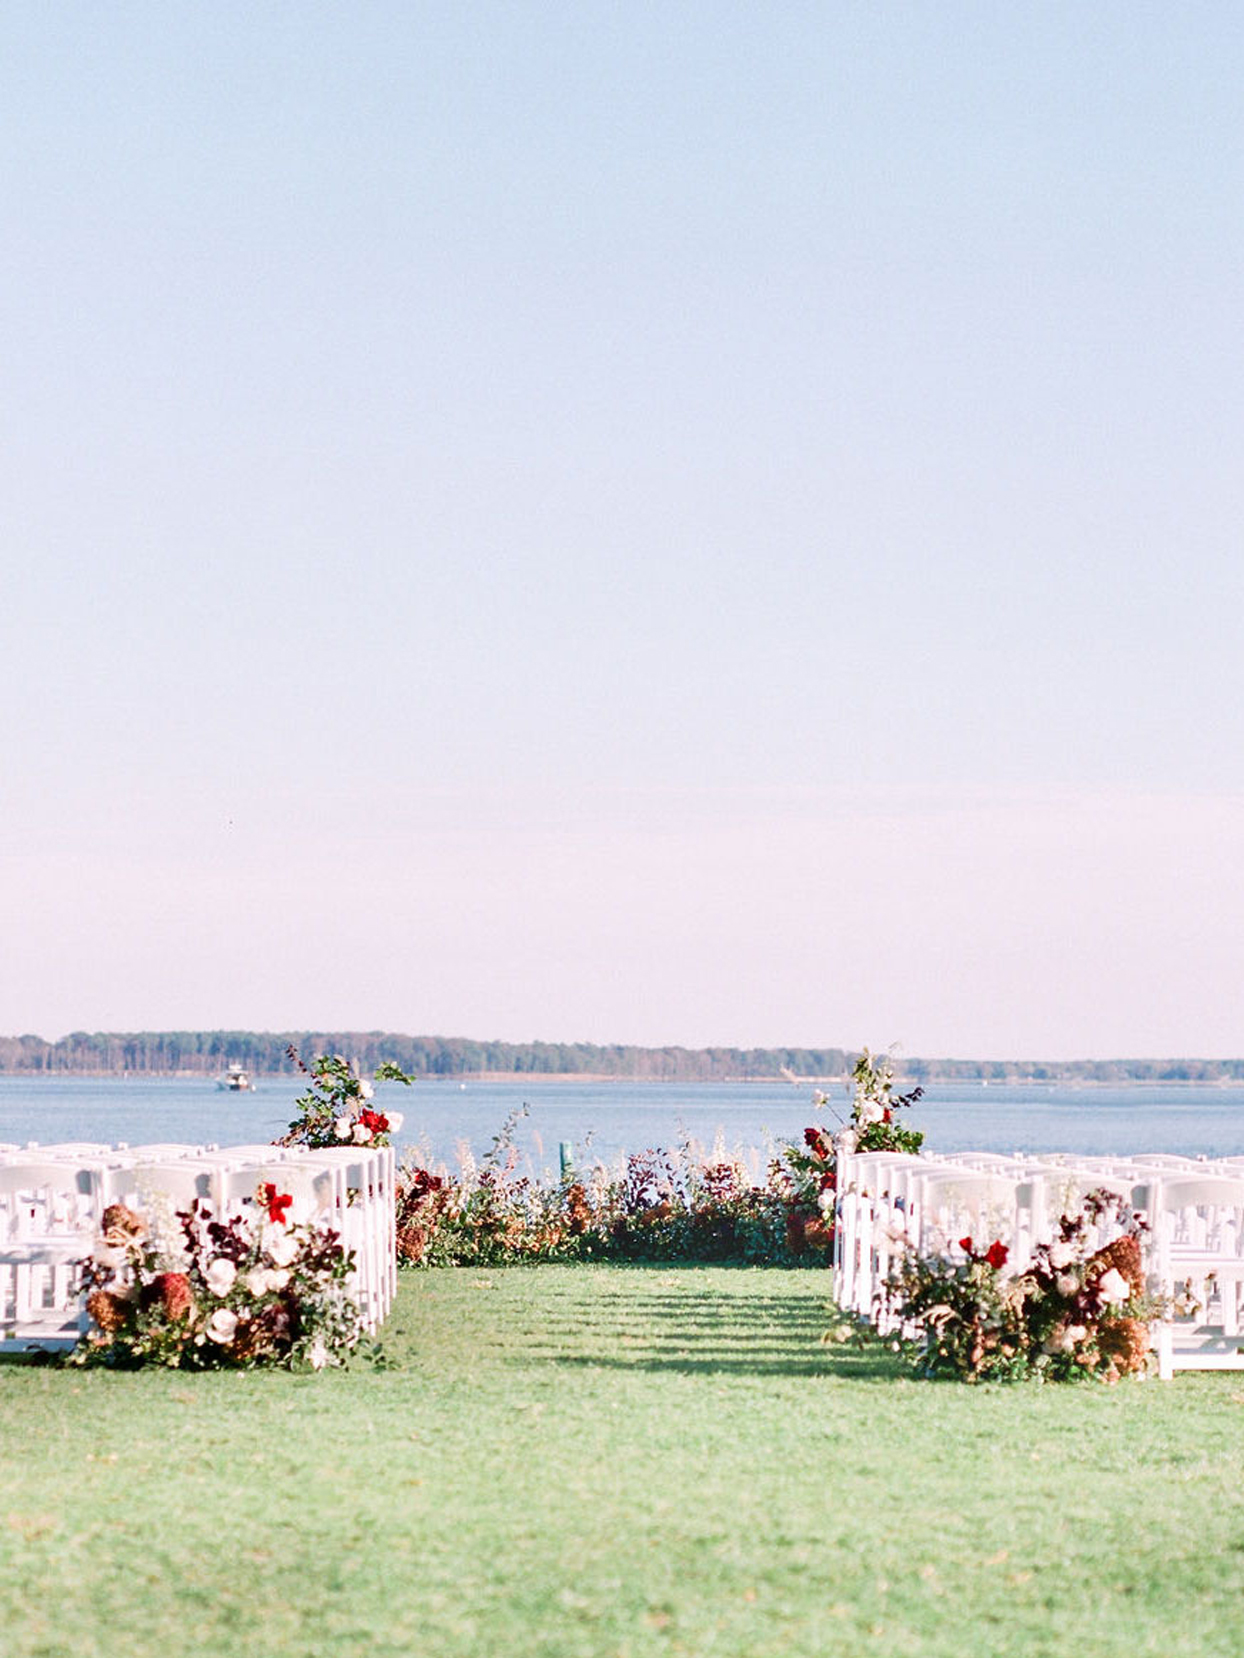 ceremony setup with with chairs and fall florals